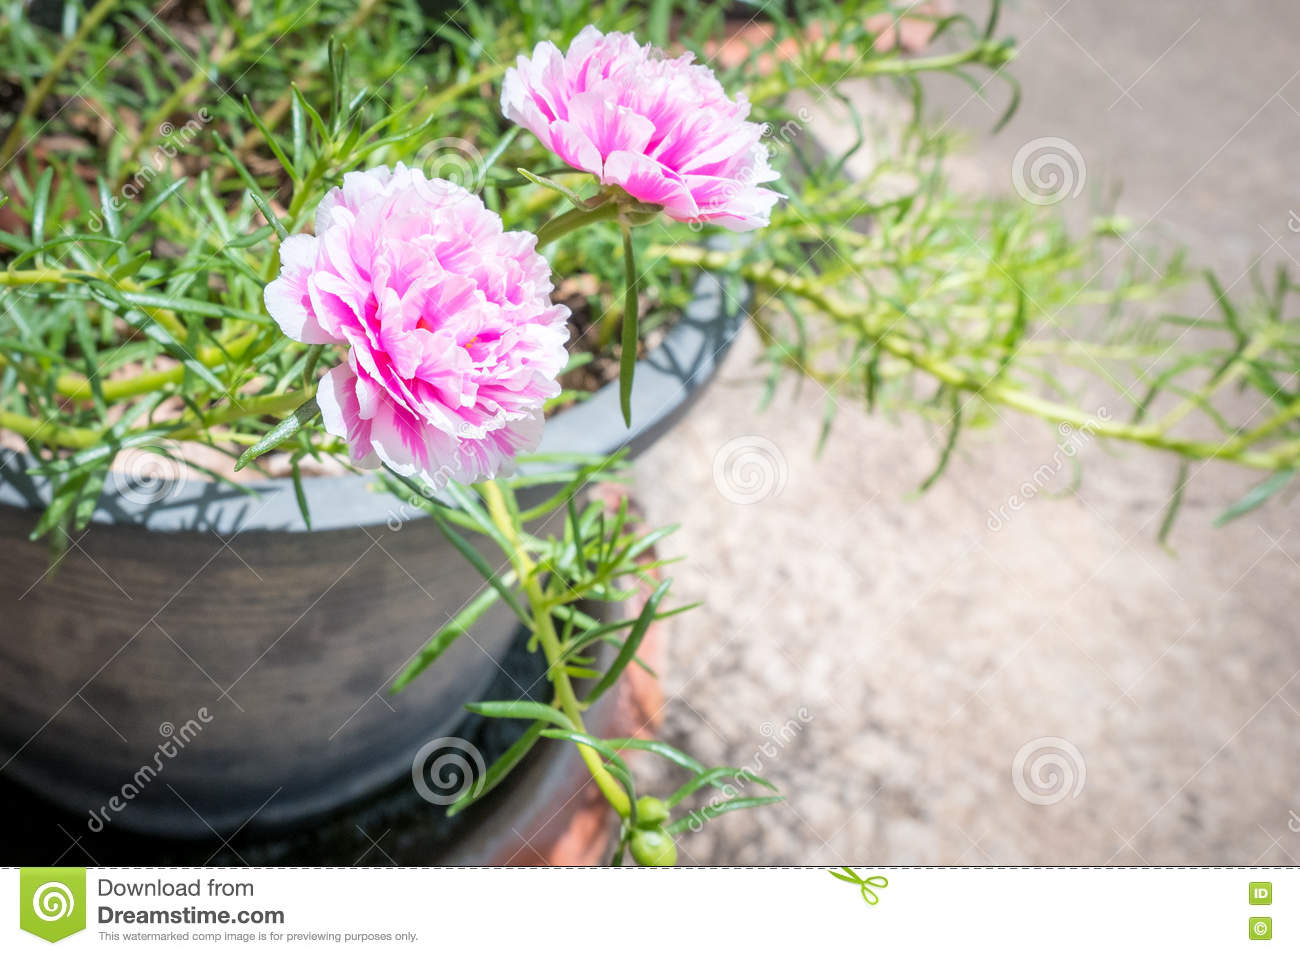 Pink flowers stock photo image of bright blossom common 72941346 download comp mightylinksfo